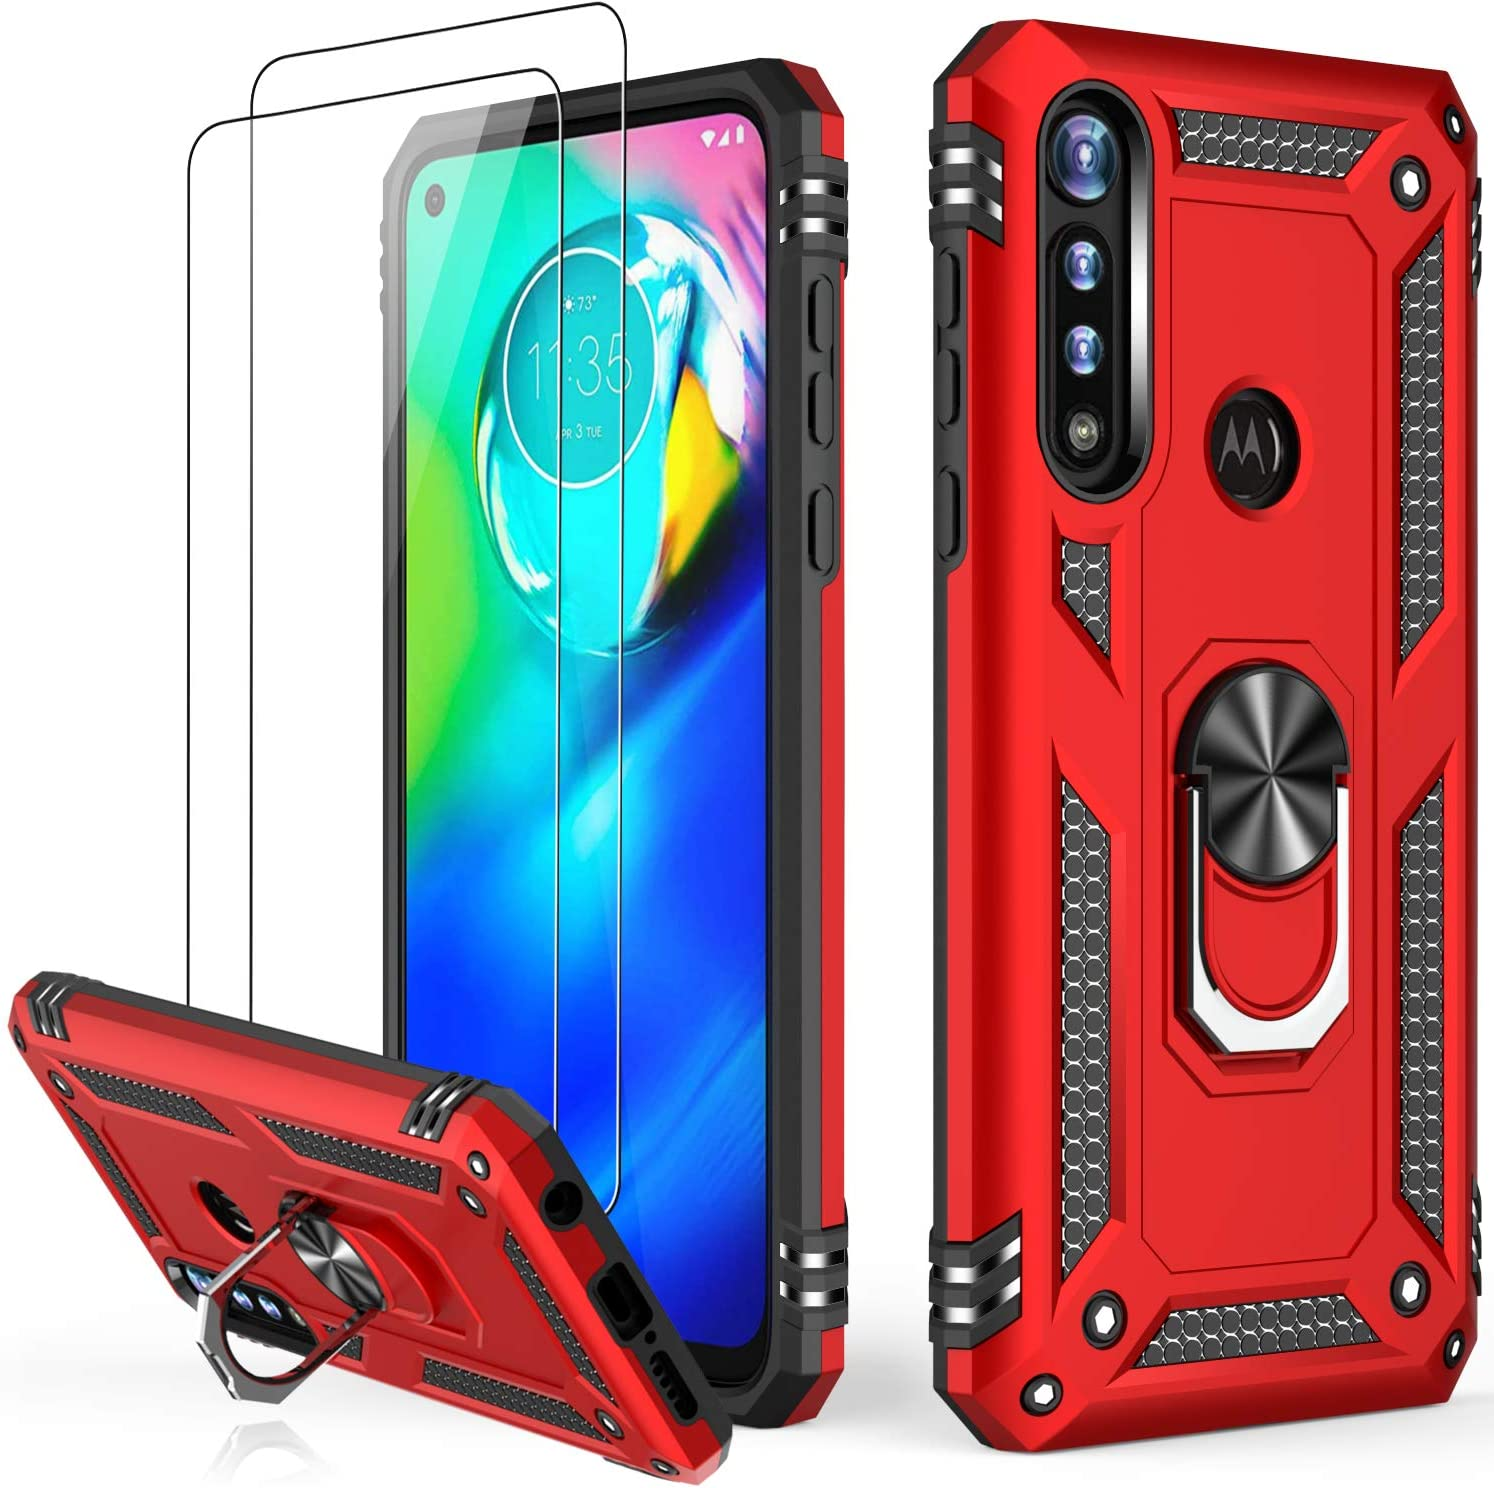 LUMARKE Moto G Power Case with Glass Screen Protector(2 Pack),Pass 16ft Drop Test Military Grade Heavy Duty Cover with Magnetic Kickstand,Protective Phone Case for Moto G Power Red